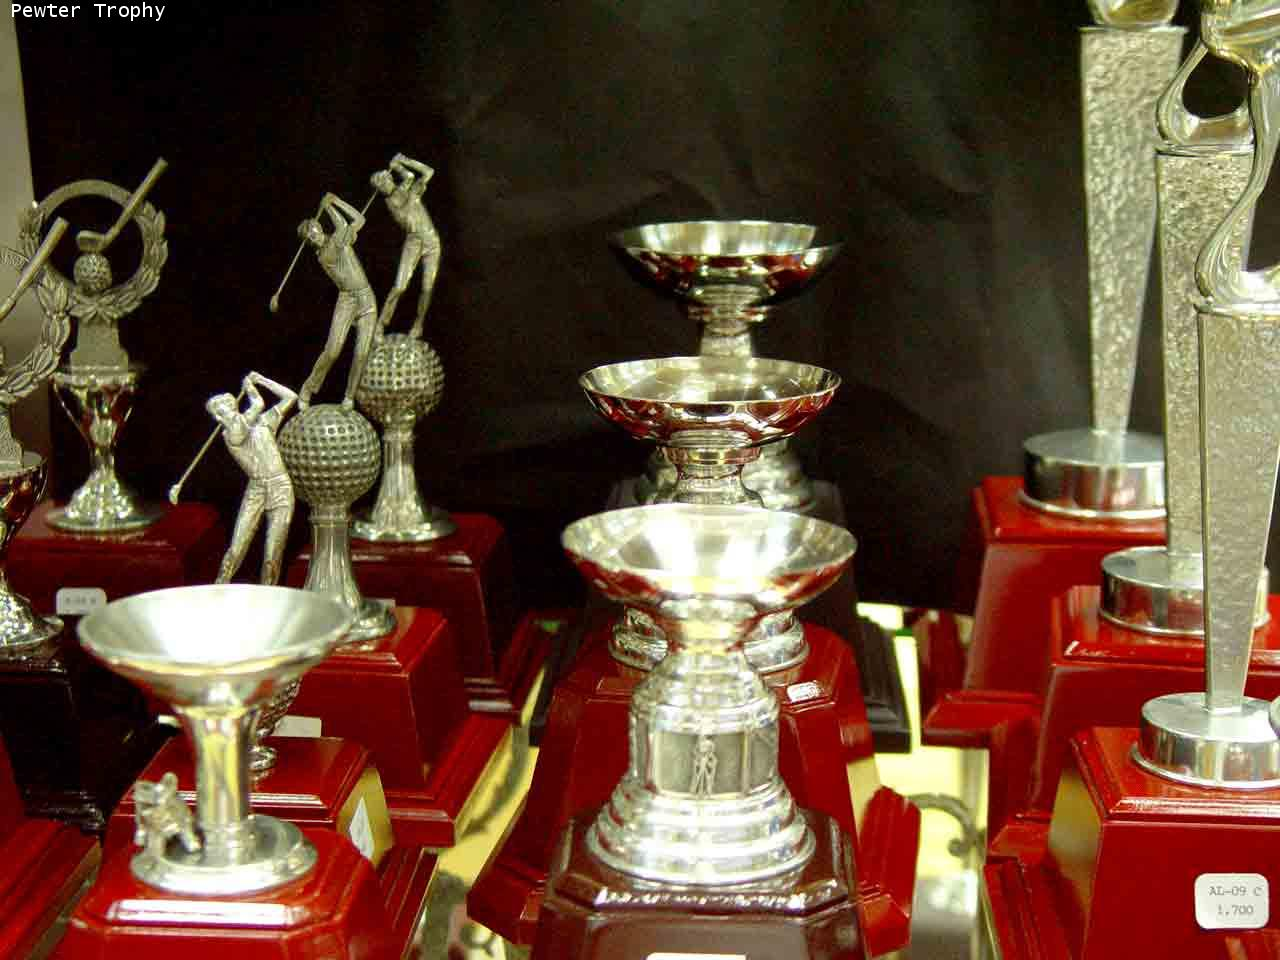 Pewter Cup